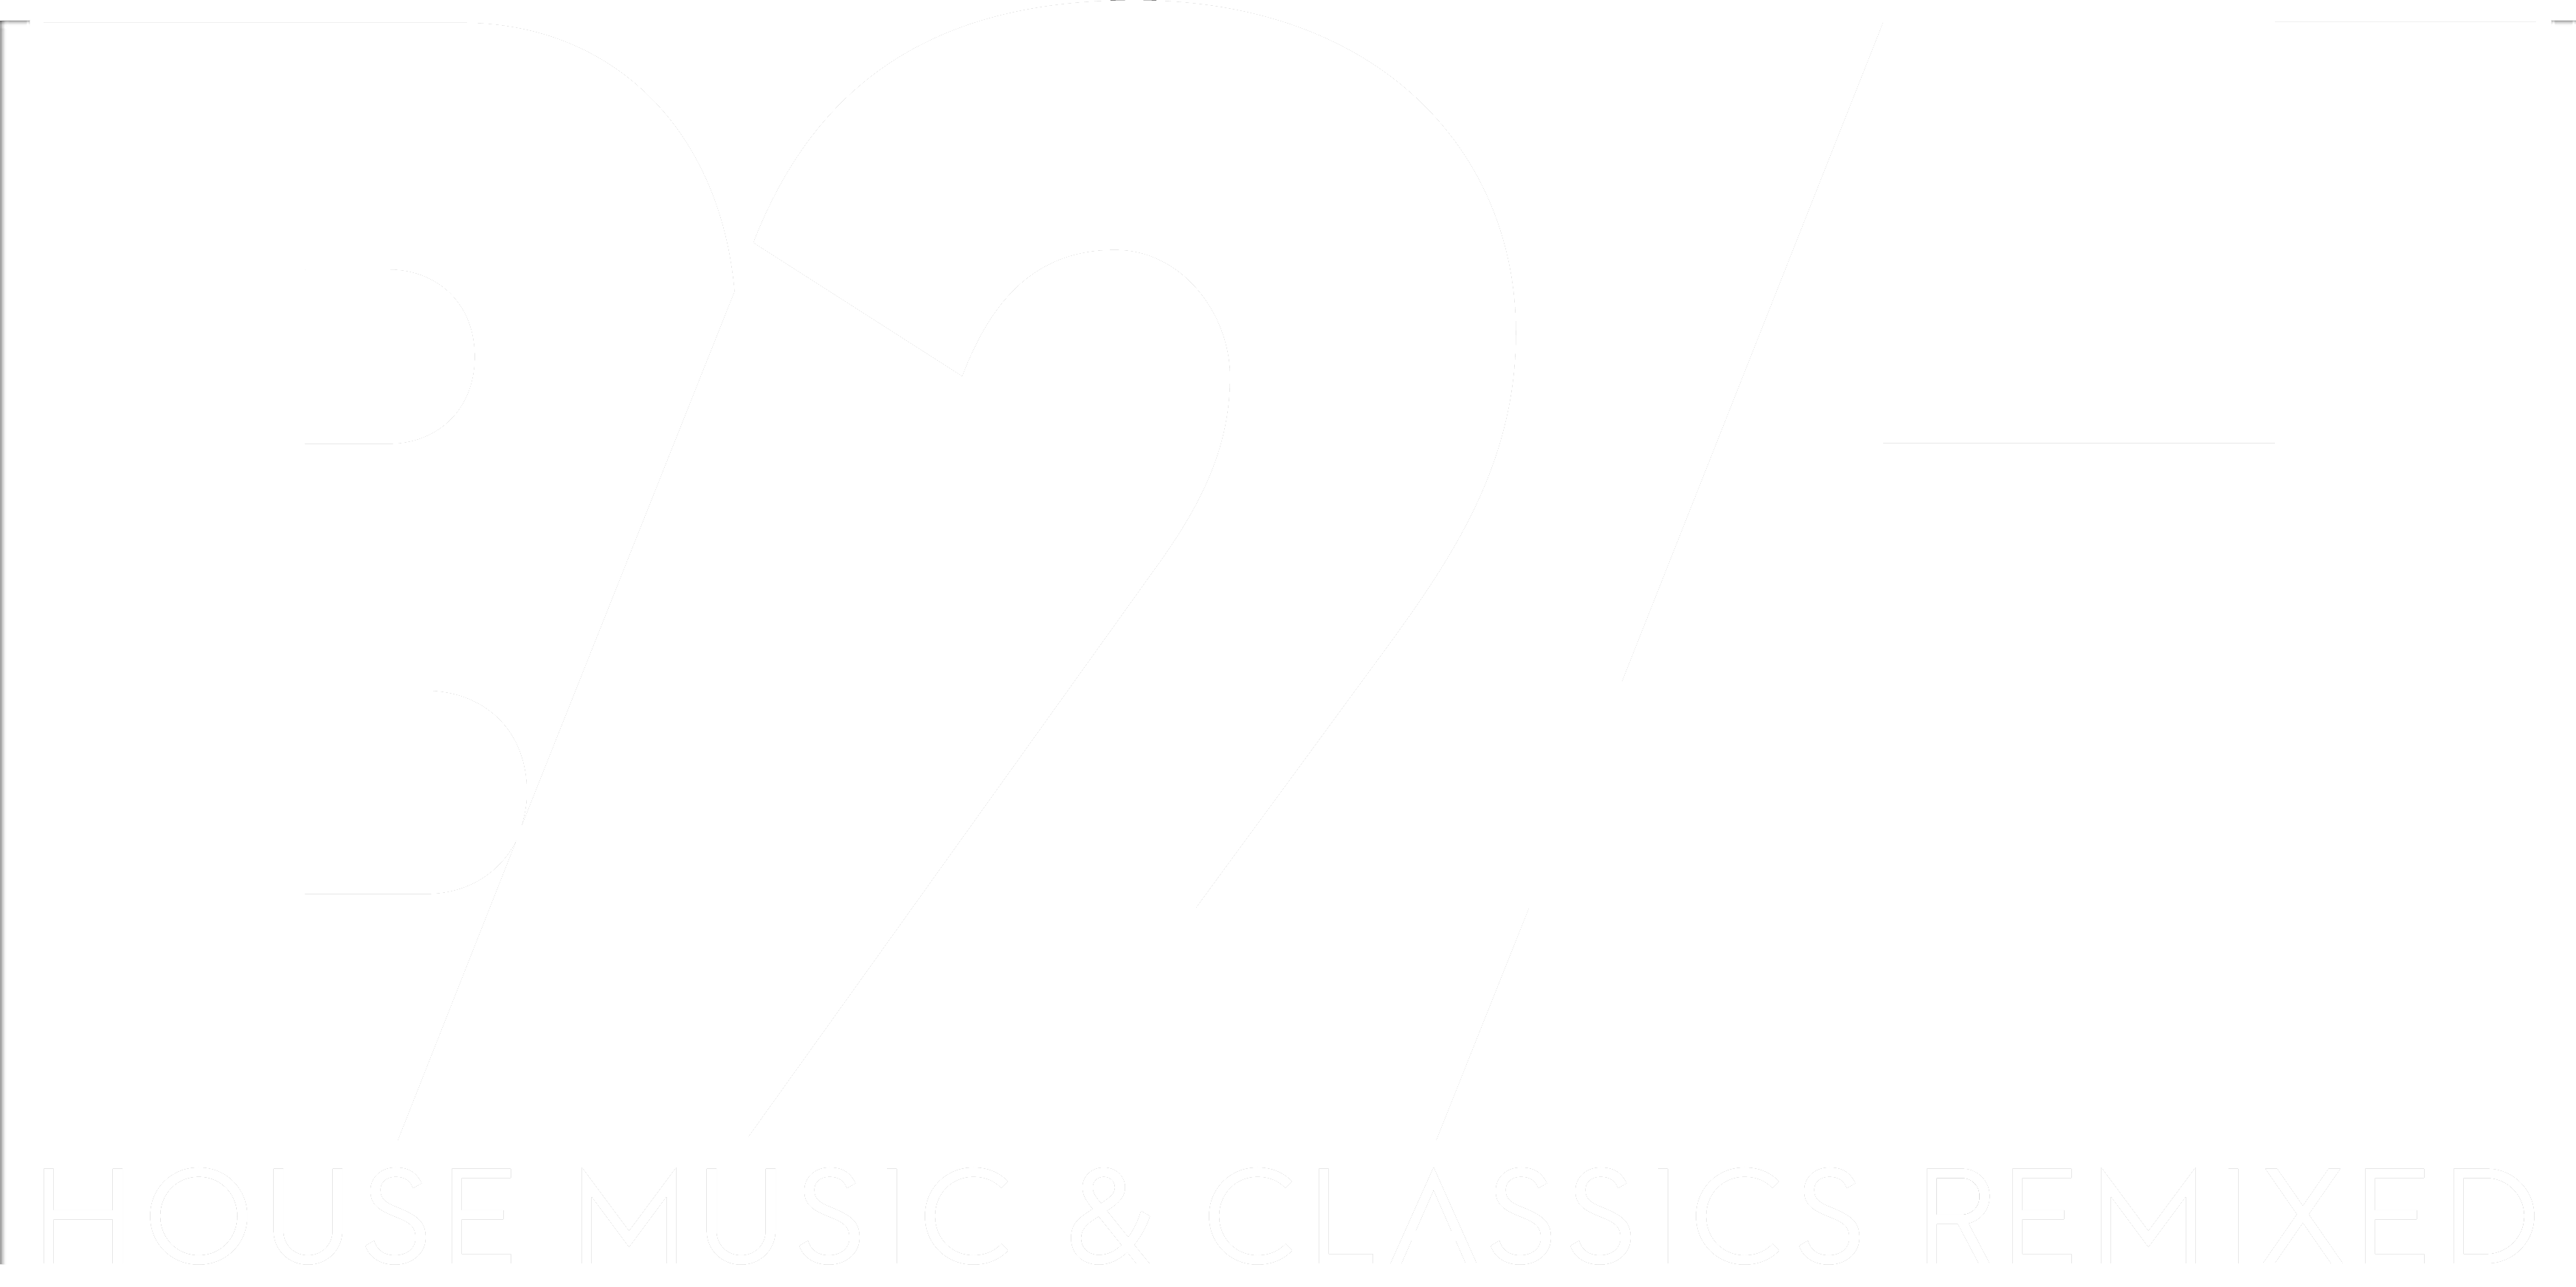 Back2house - House Music & Classics Remixed